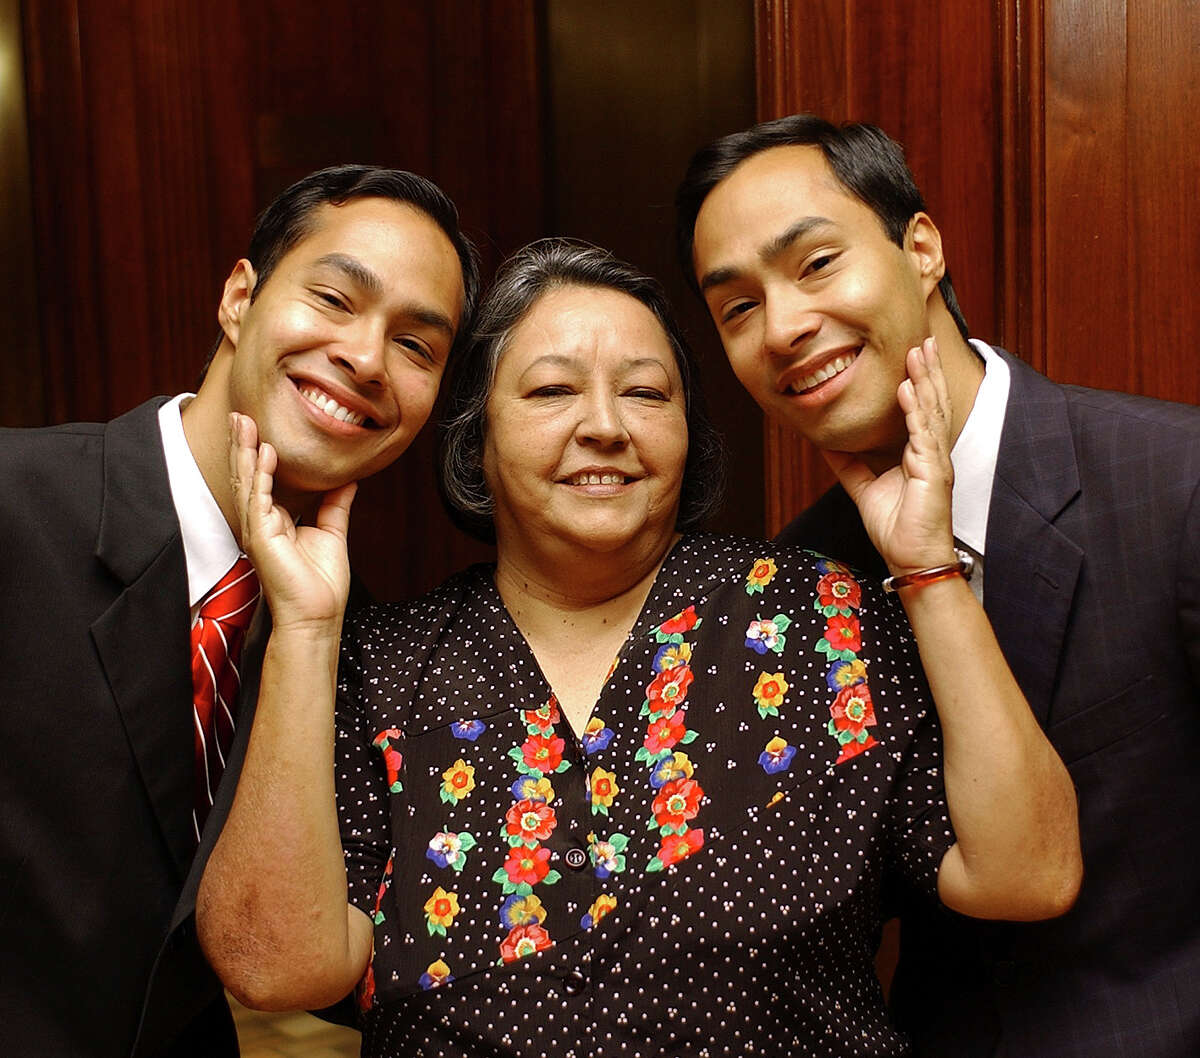 The Castros, Julian, Rosie and Joaquin, pose for a portrait on Sunday April 23, 2006. Helen L. Montoya/Staff